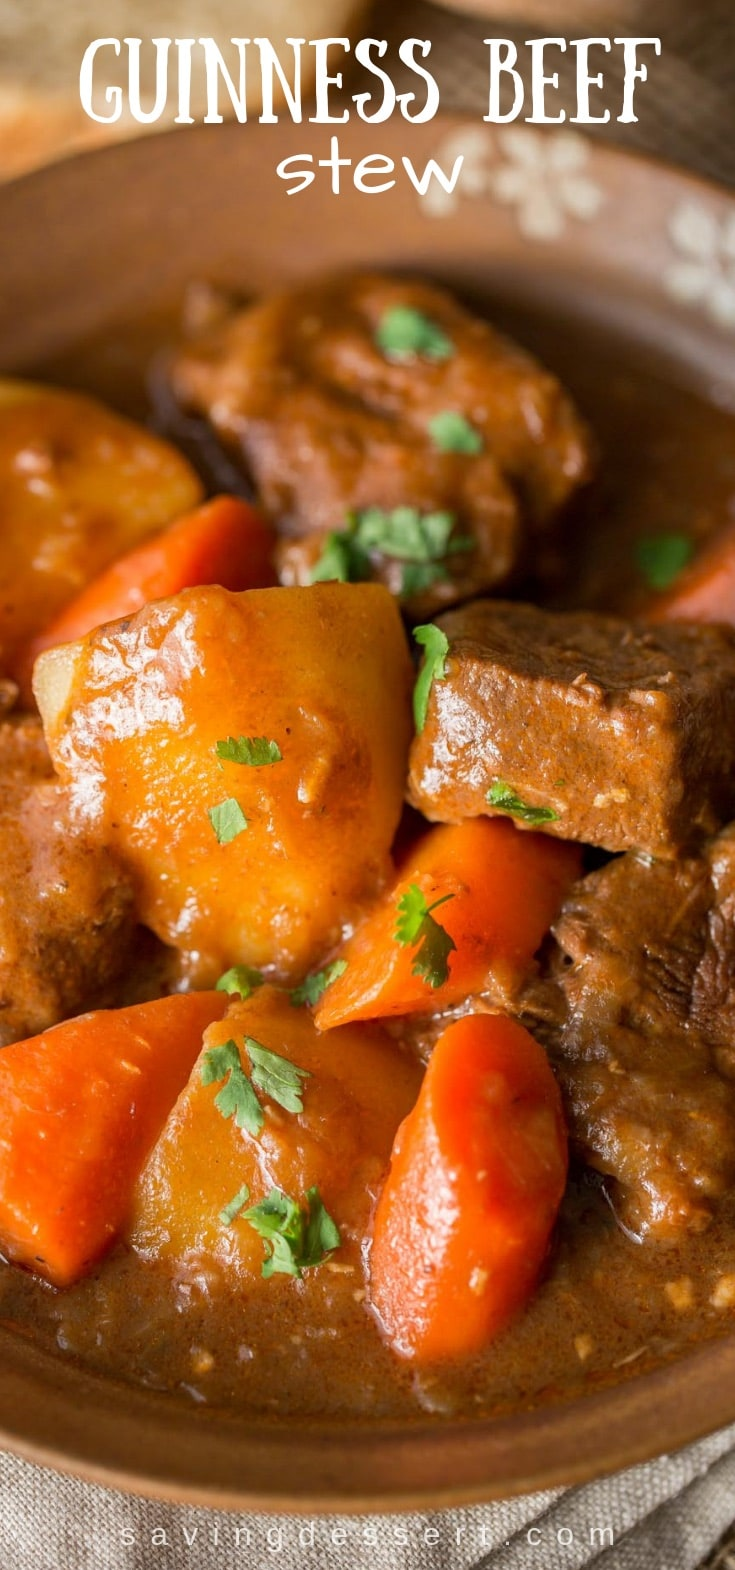 Guinness Beef Stew - Don't wait for St. Patrick's Day to enjoy this amazing stew. Tender chunks of beef are cooked, uncovered in a rich, thick and flavorful gravy with carrots and potatoes. #guinness #stew #beefstew #guinnessstew #irishstew #stpatricksdaystew #beef #dinner